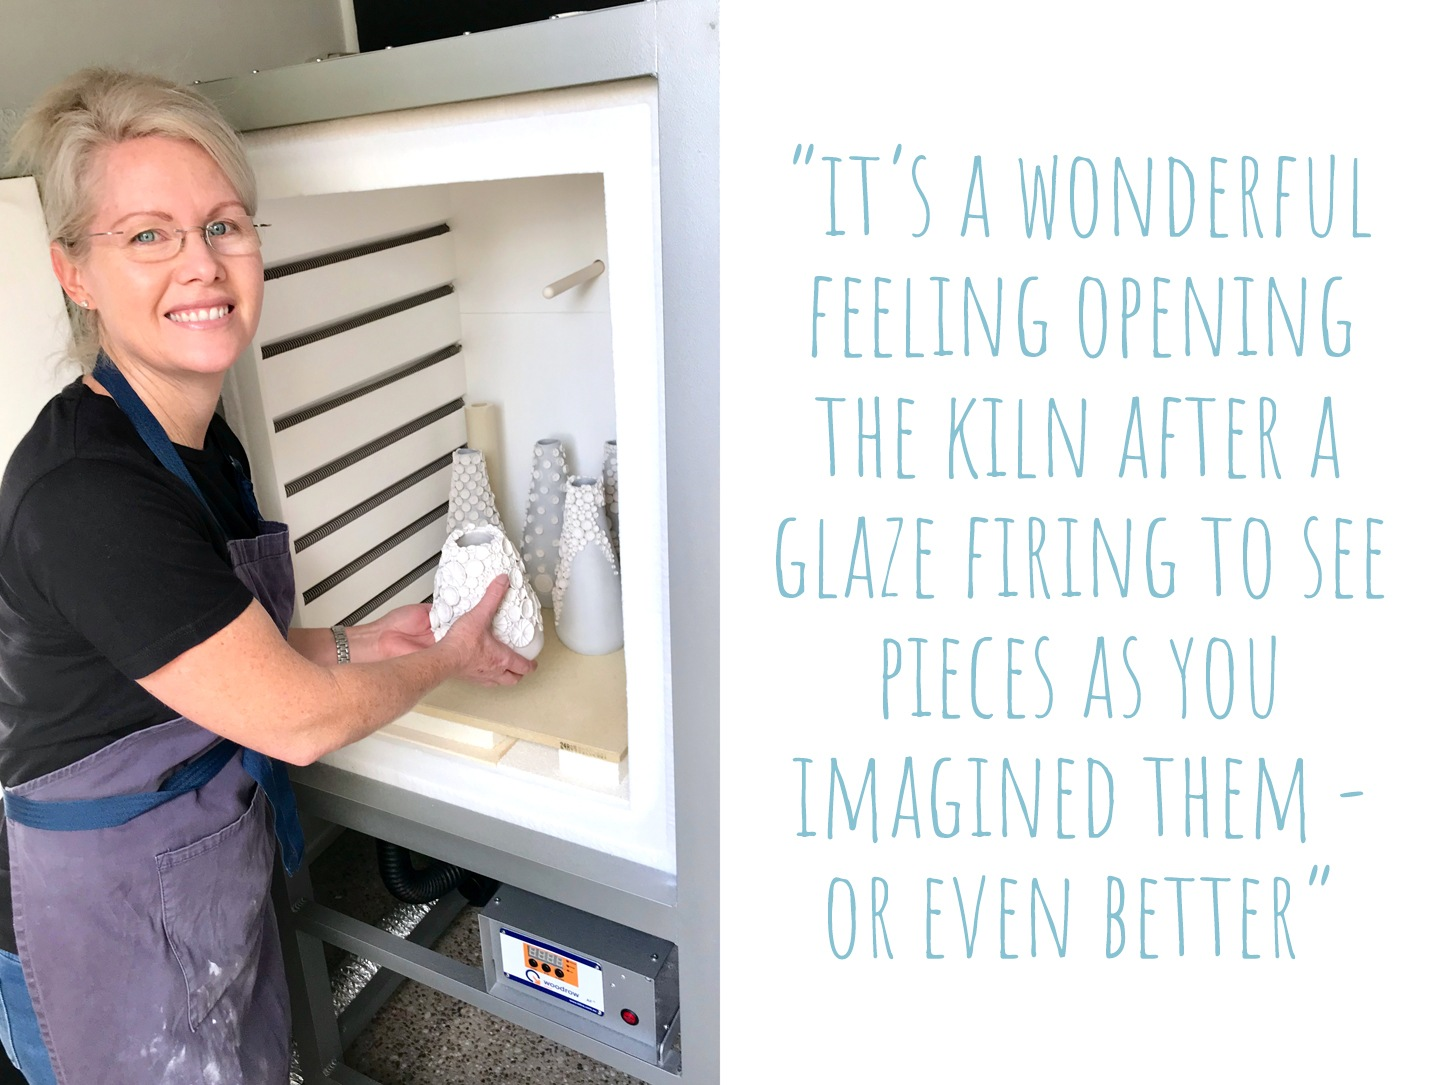 Nicole adding ceramic vases to her home kiln; 'It's a wonderful feeling opening the kiln after a glaze firing to see pieces as you imagined them – or even better'